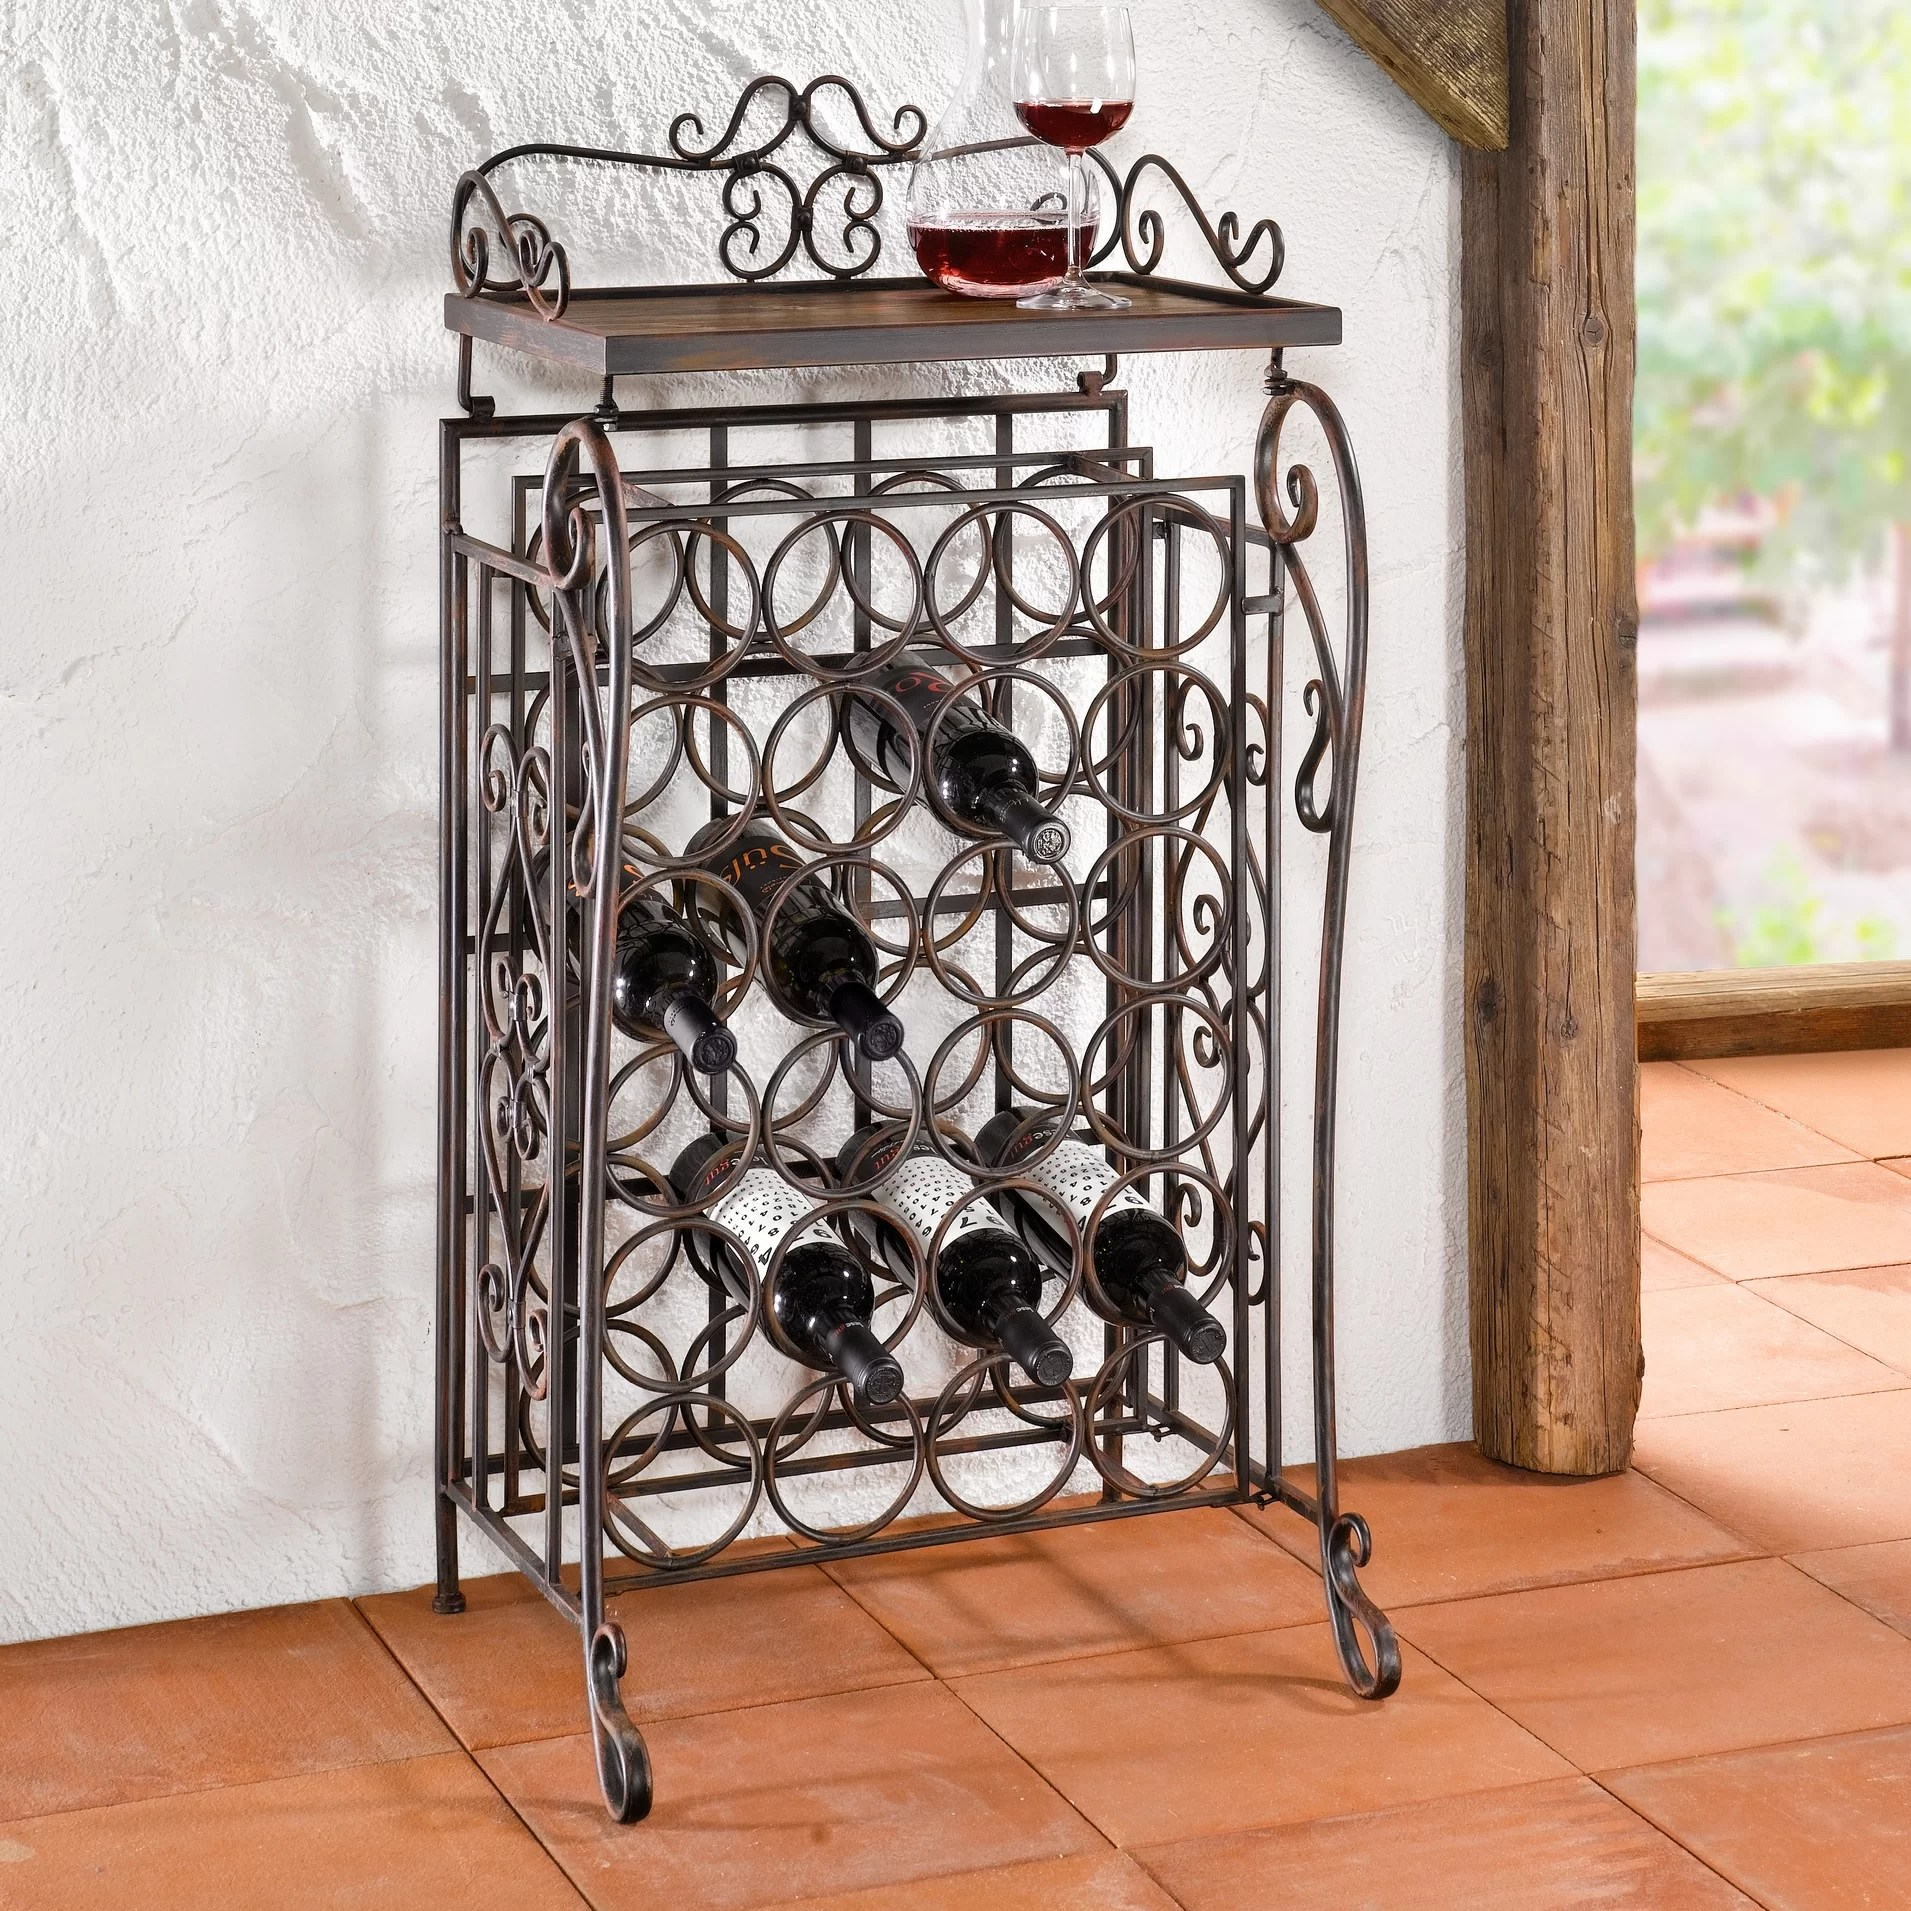 In Floor Wine Storage Piersurplus 24 Bottles Floor Wine Rack And Reviews Wayfair